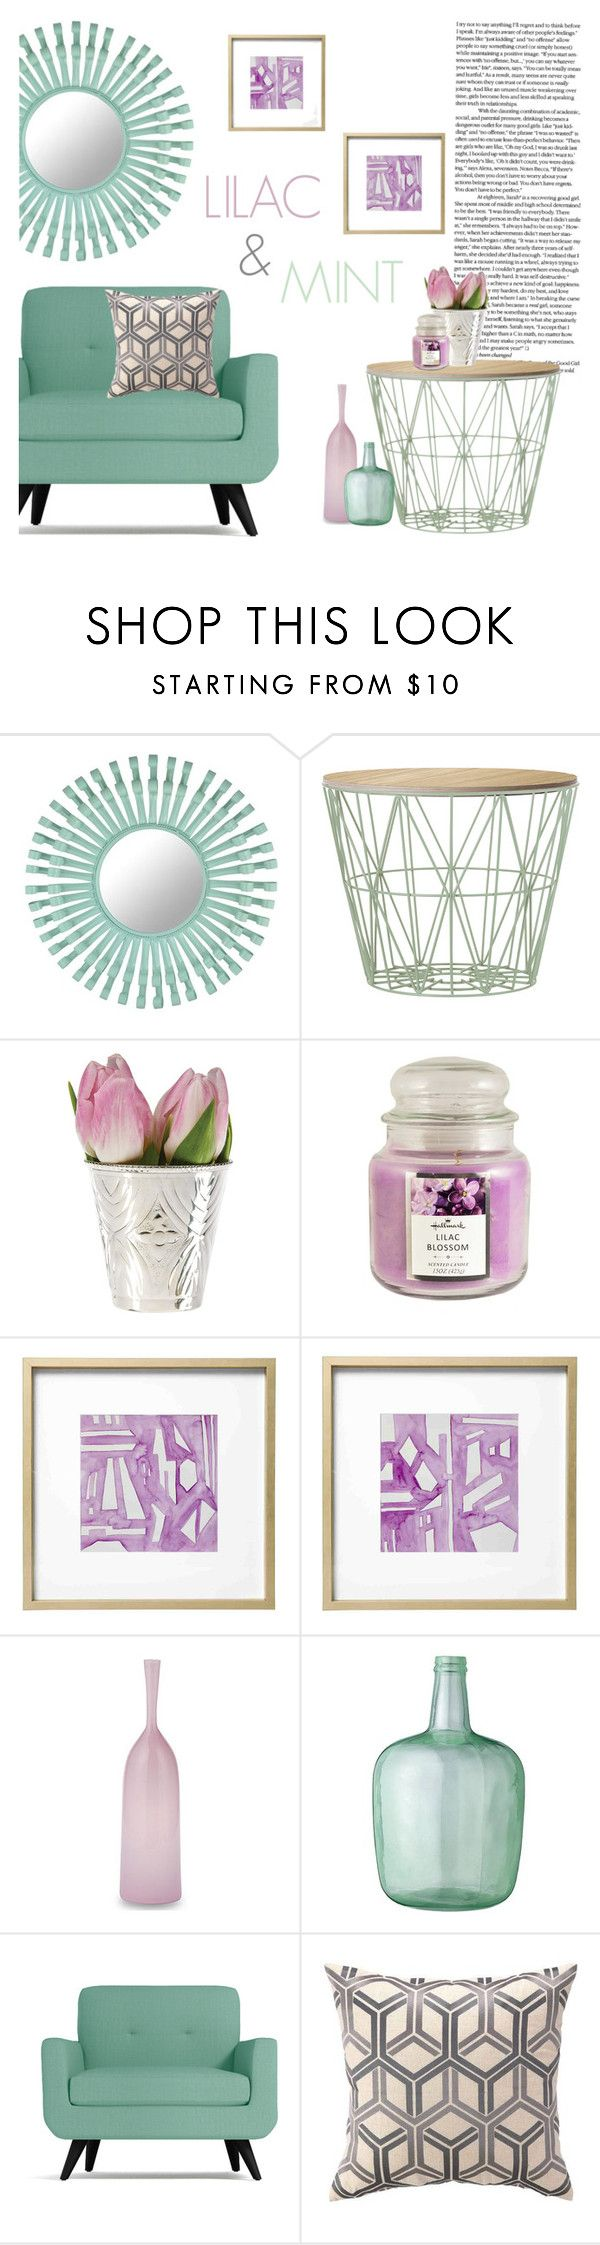 """LILAC & MINT"" by shenies on Polyvore featuring interior, interiors, interior design, home, home decor, interior decorating, Florence Broadhurst, ferm LIVING, Cultural Intrigue and Hallmark"